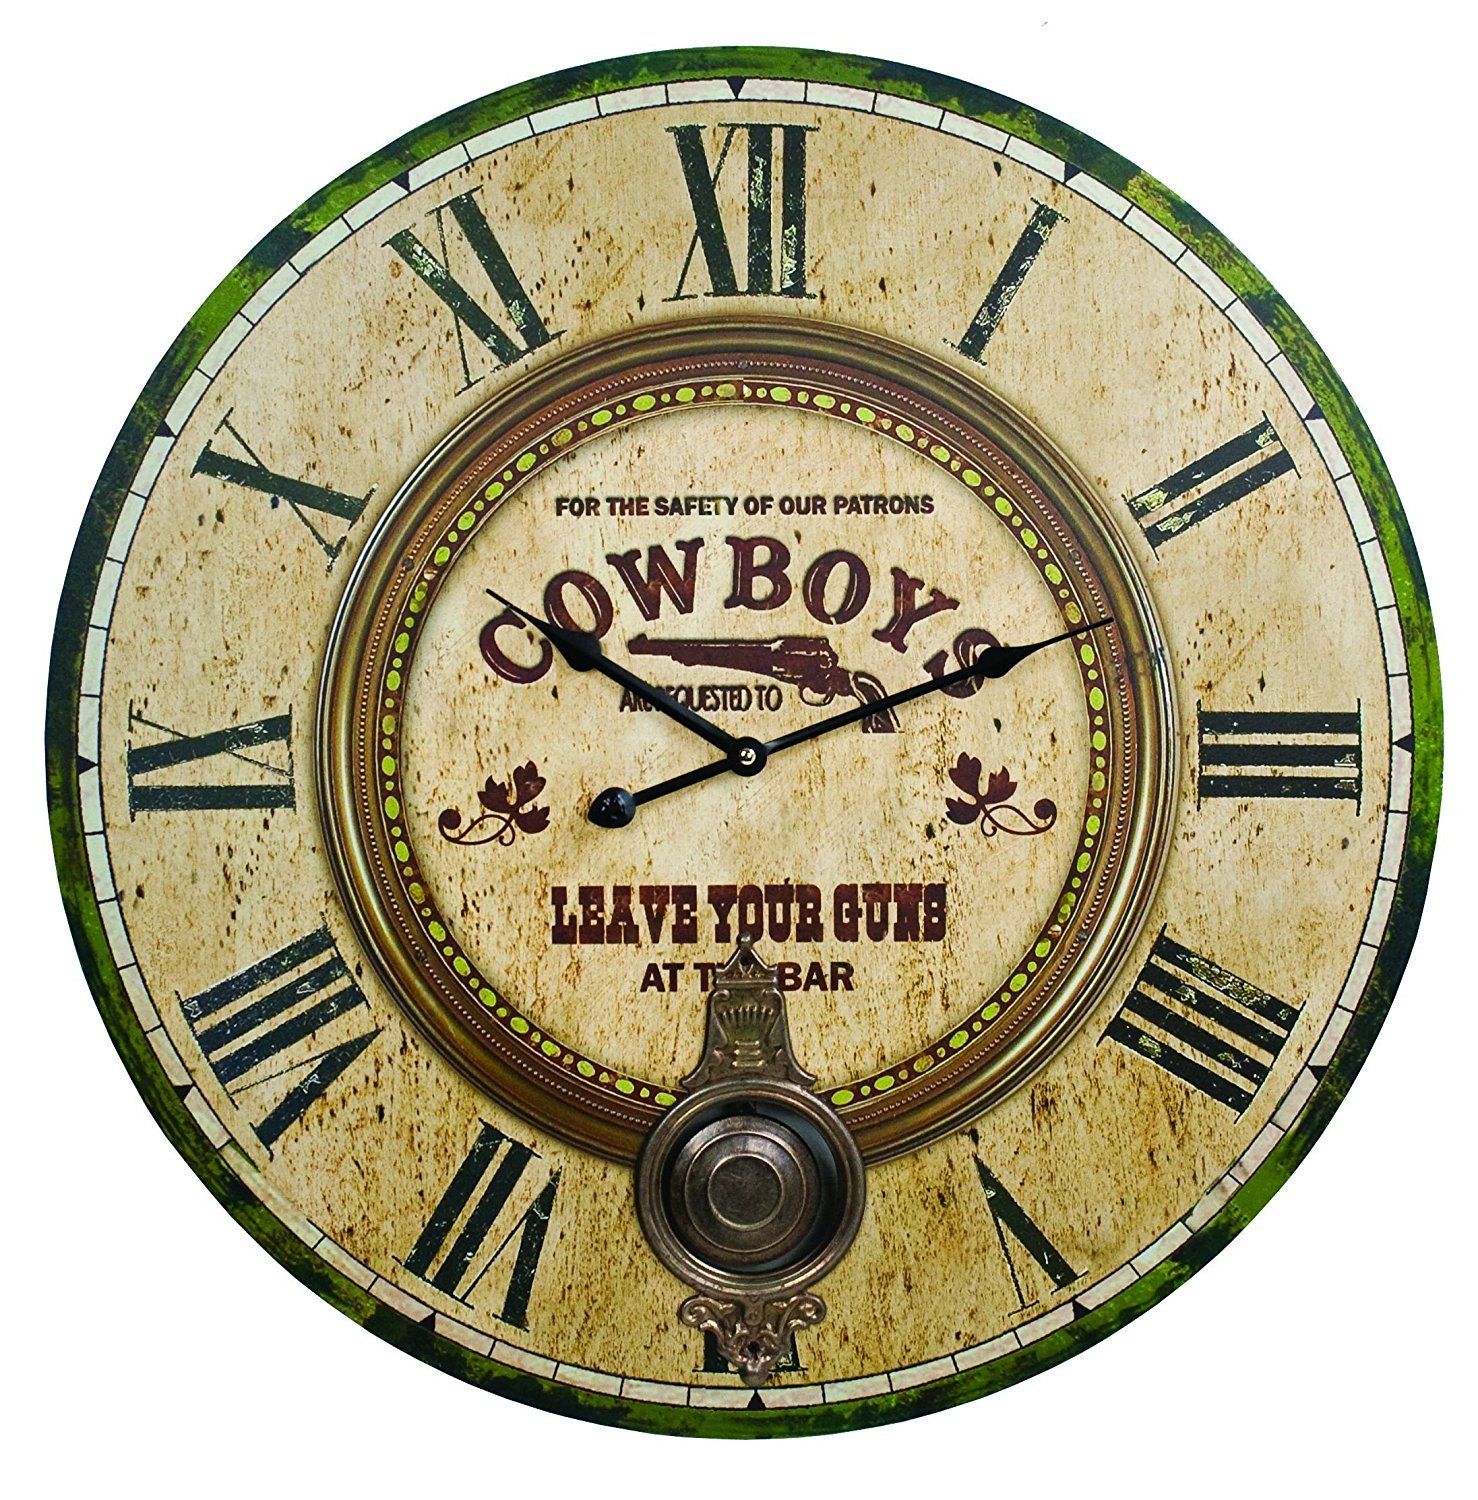 Amazon.com: Large Cowboys Western Bar Wall Clock: Home & Kitchen